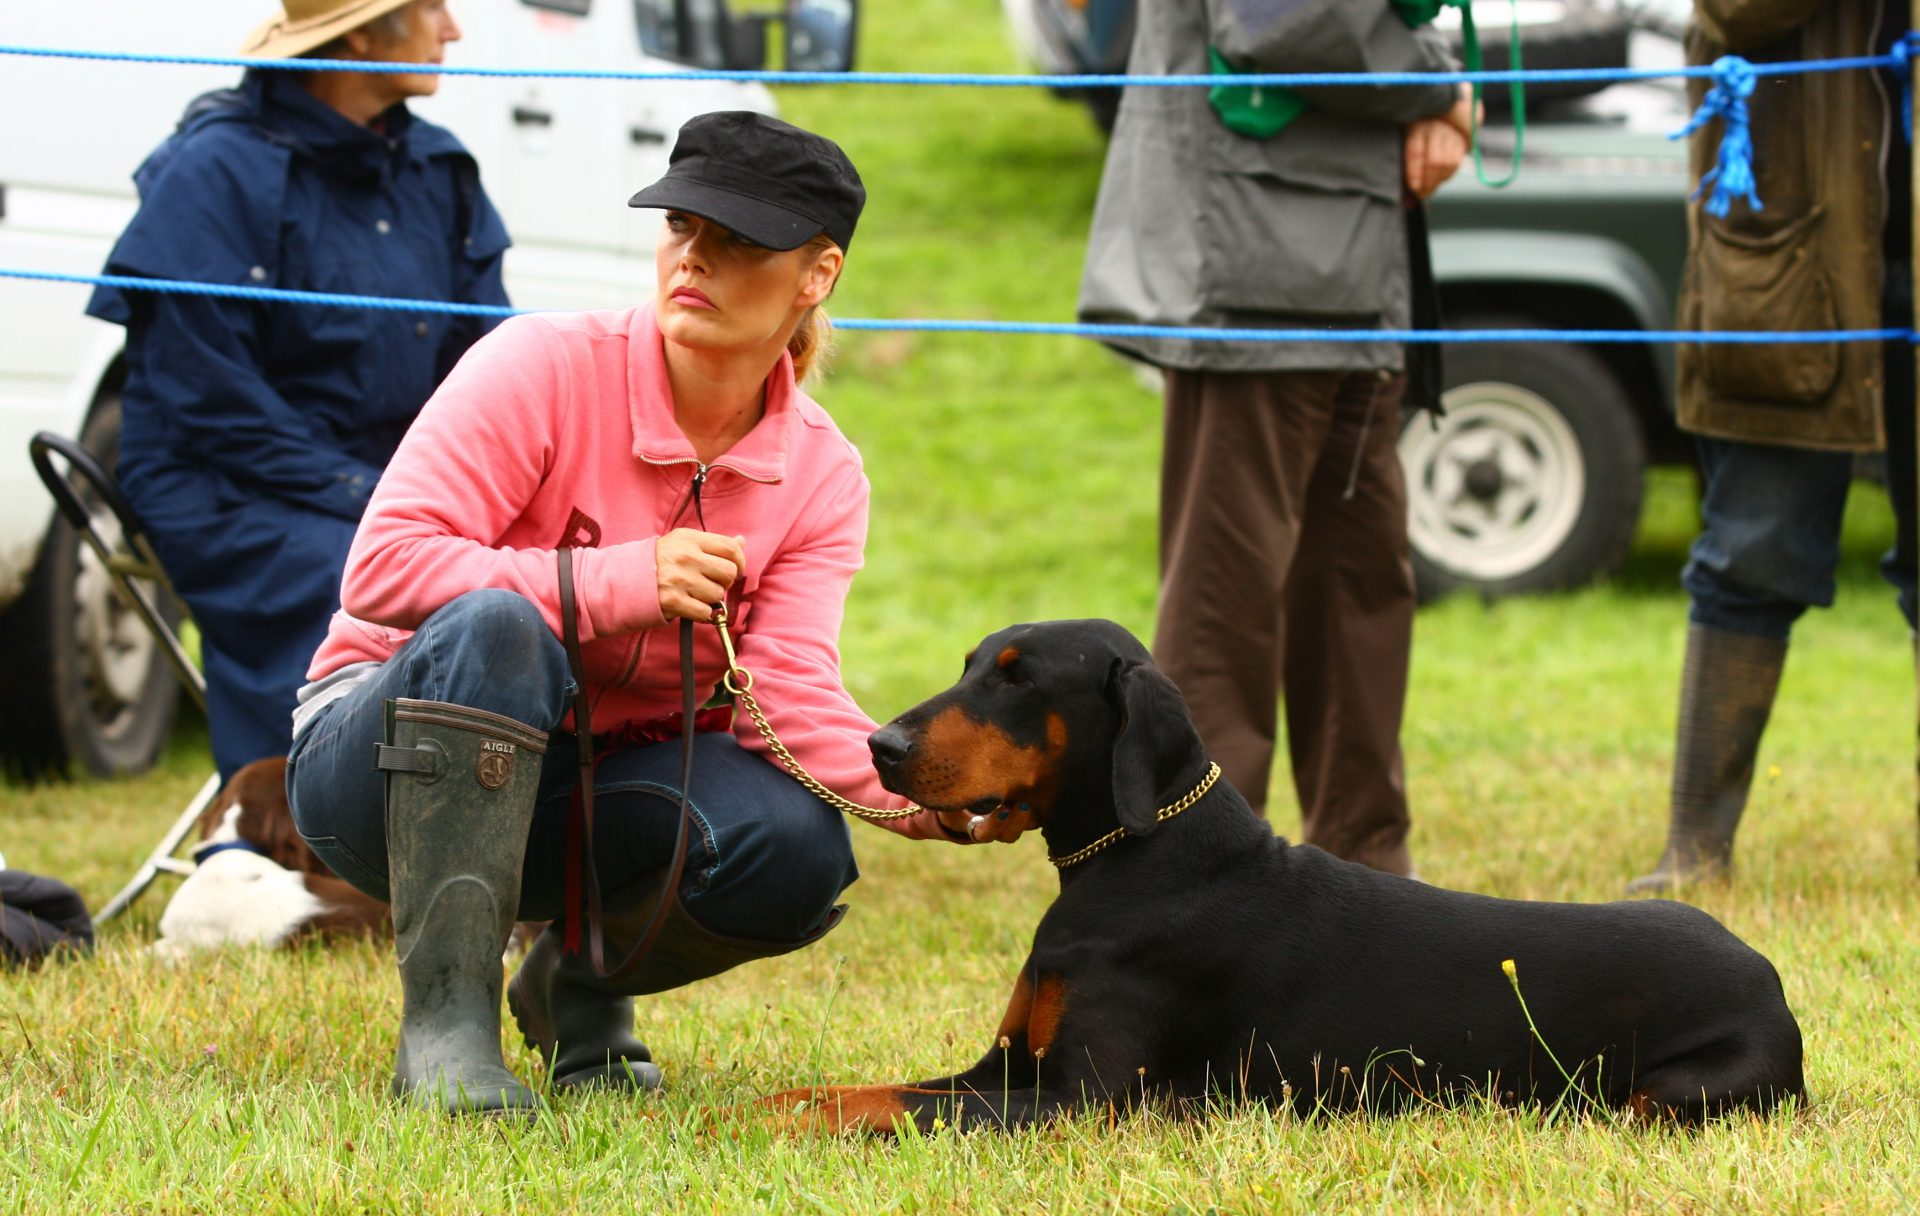 Another top dog at Chagford Show.